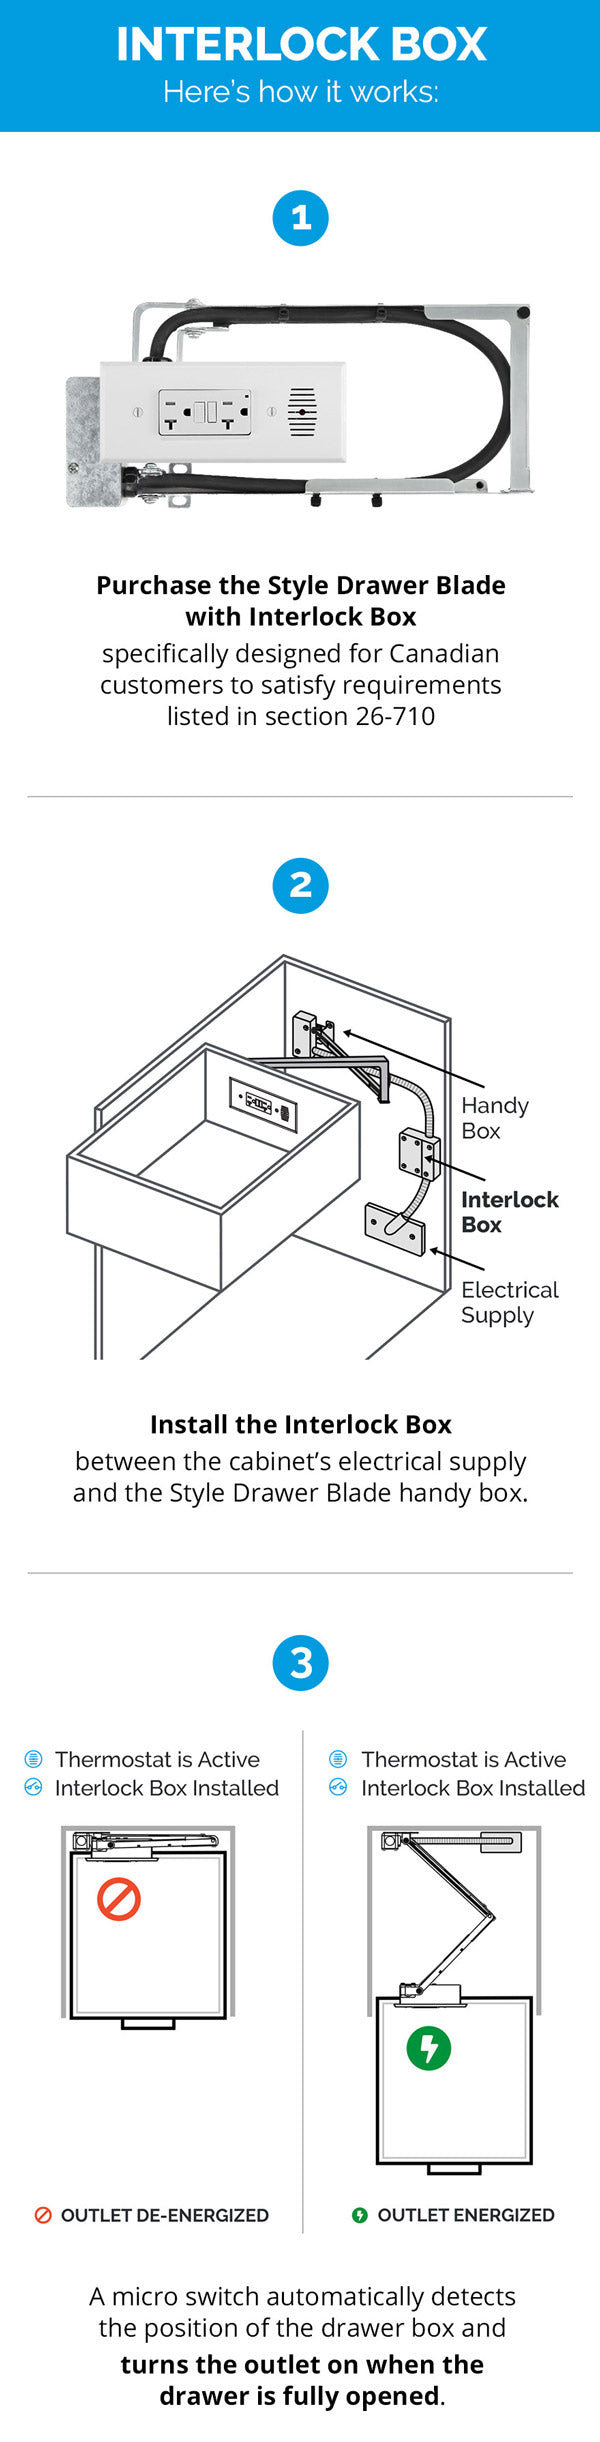 How the Interlock Box Works